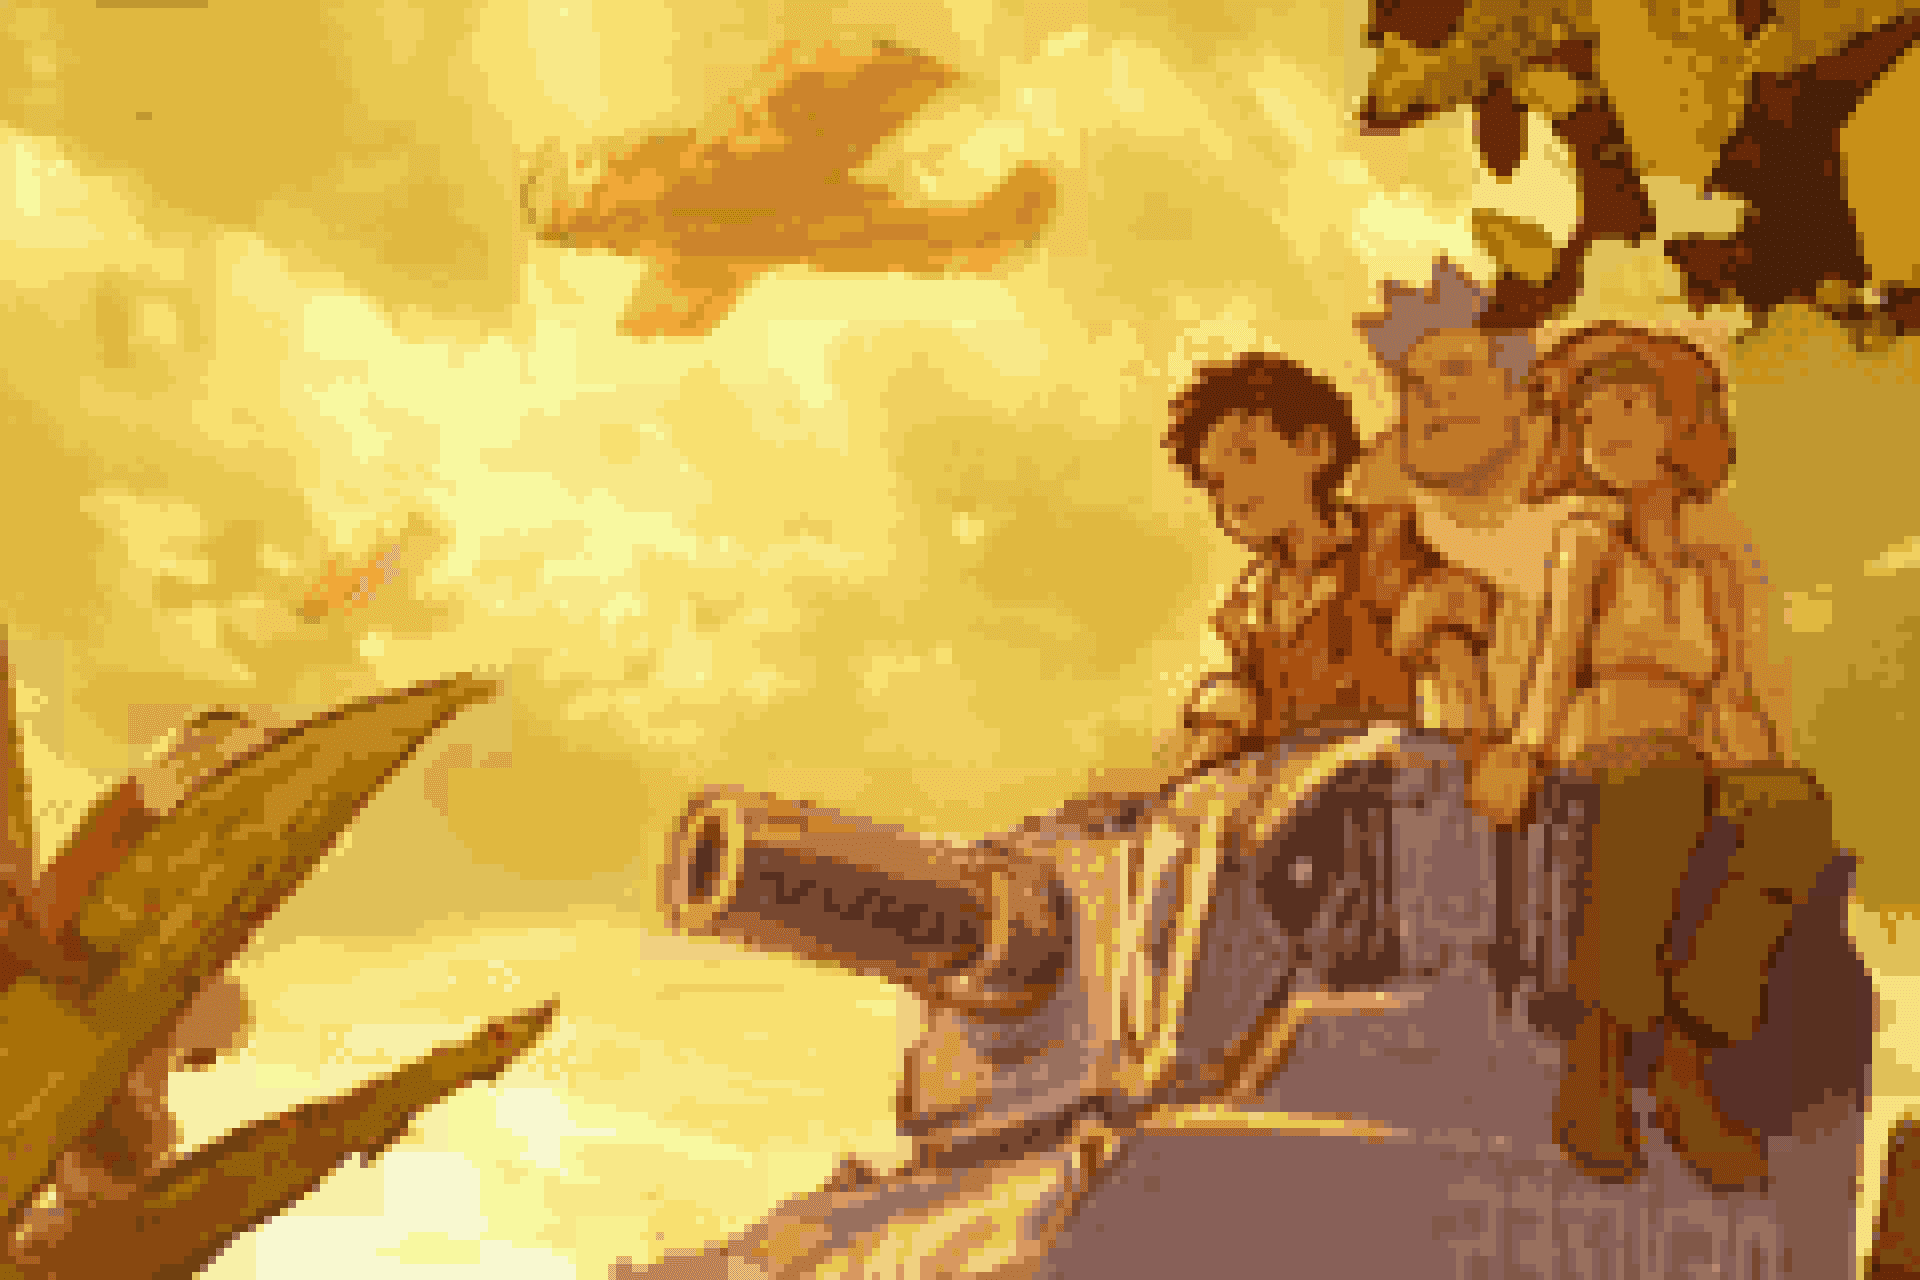 Does Anyone Have The Background Victory Images From Advance Wars 2